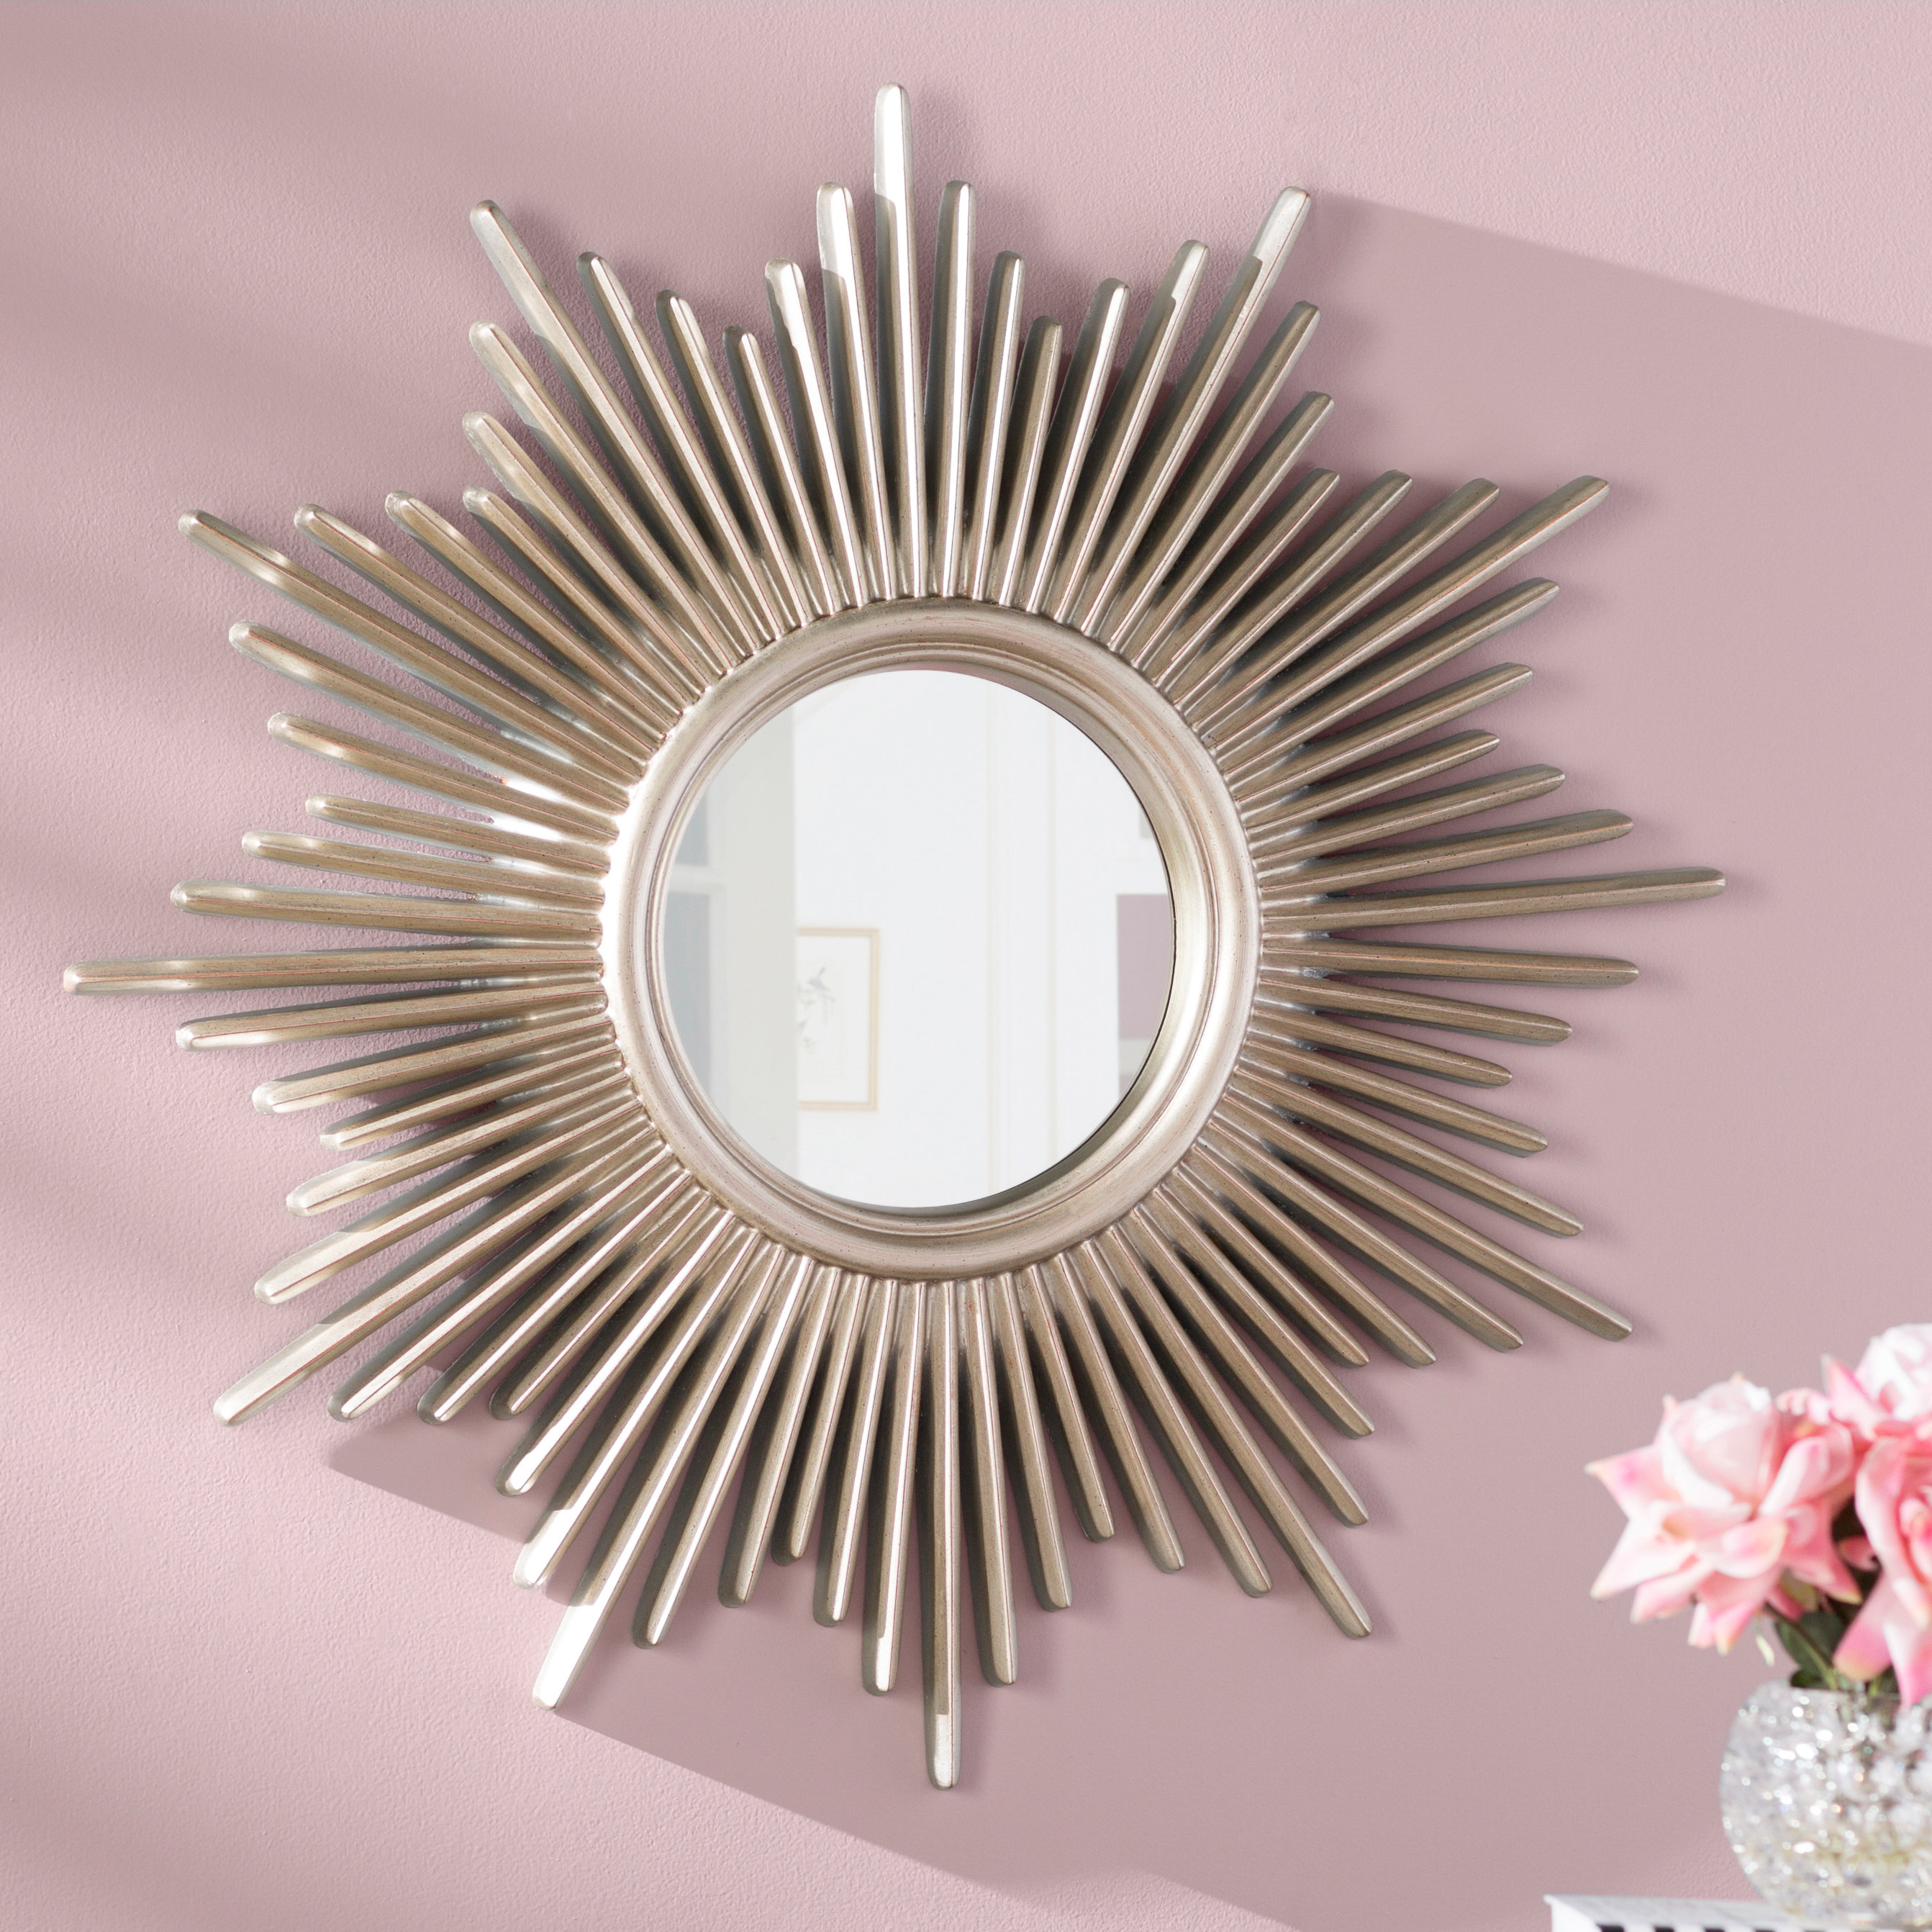 Willa Arlo Interiors Josephson Starburst Glam Beveled Accent Within Orion Starburst Wall Mirrors (Image 20 of 20)